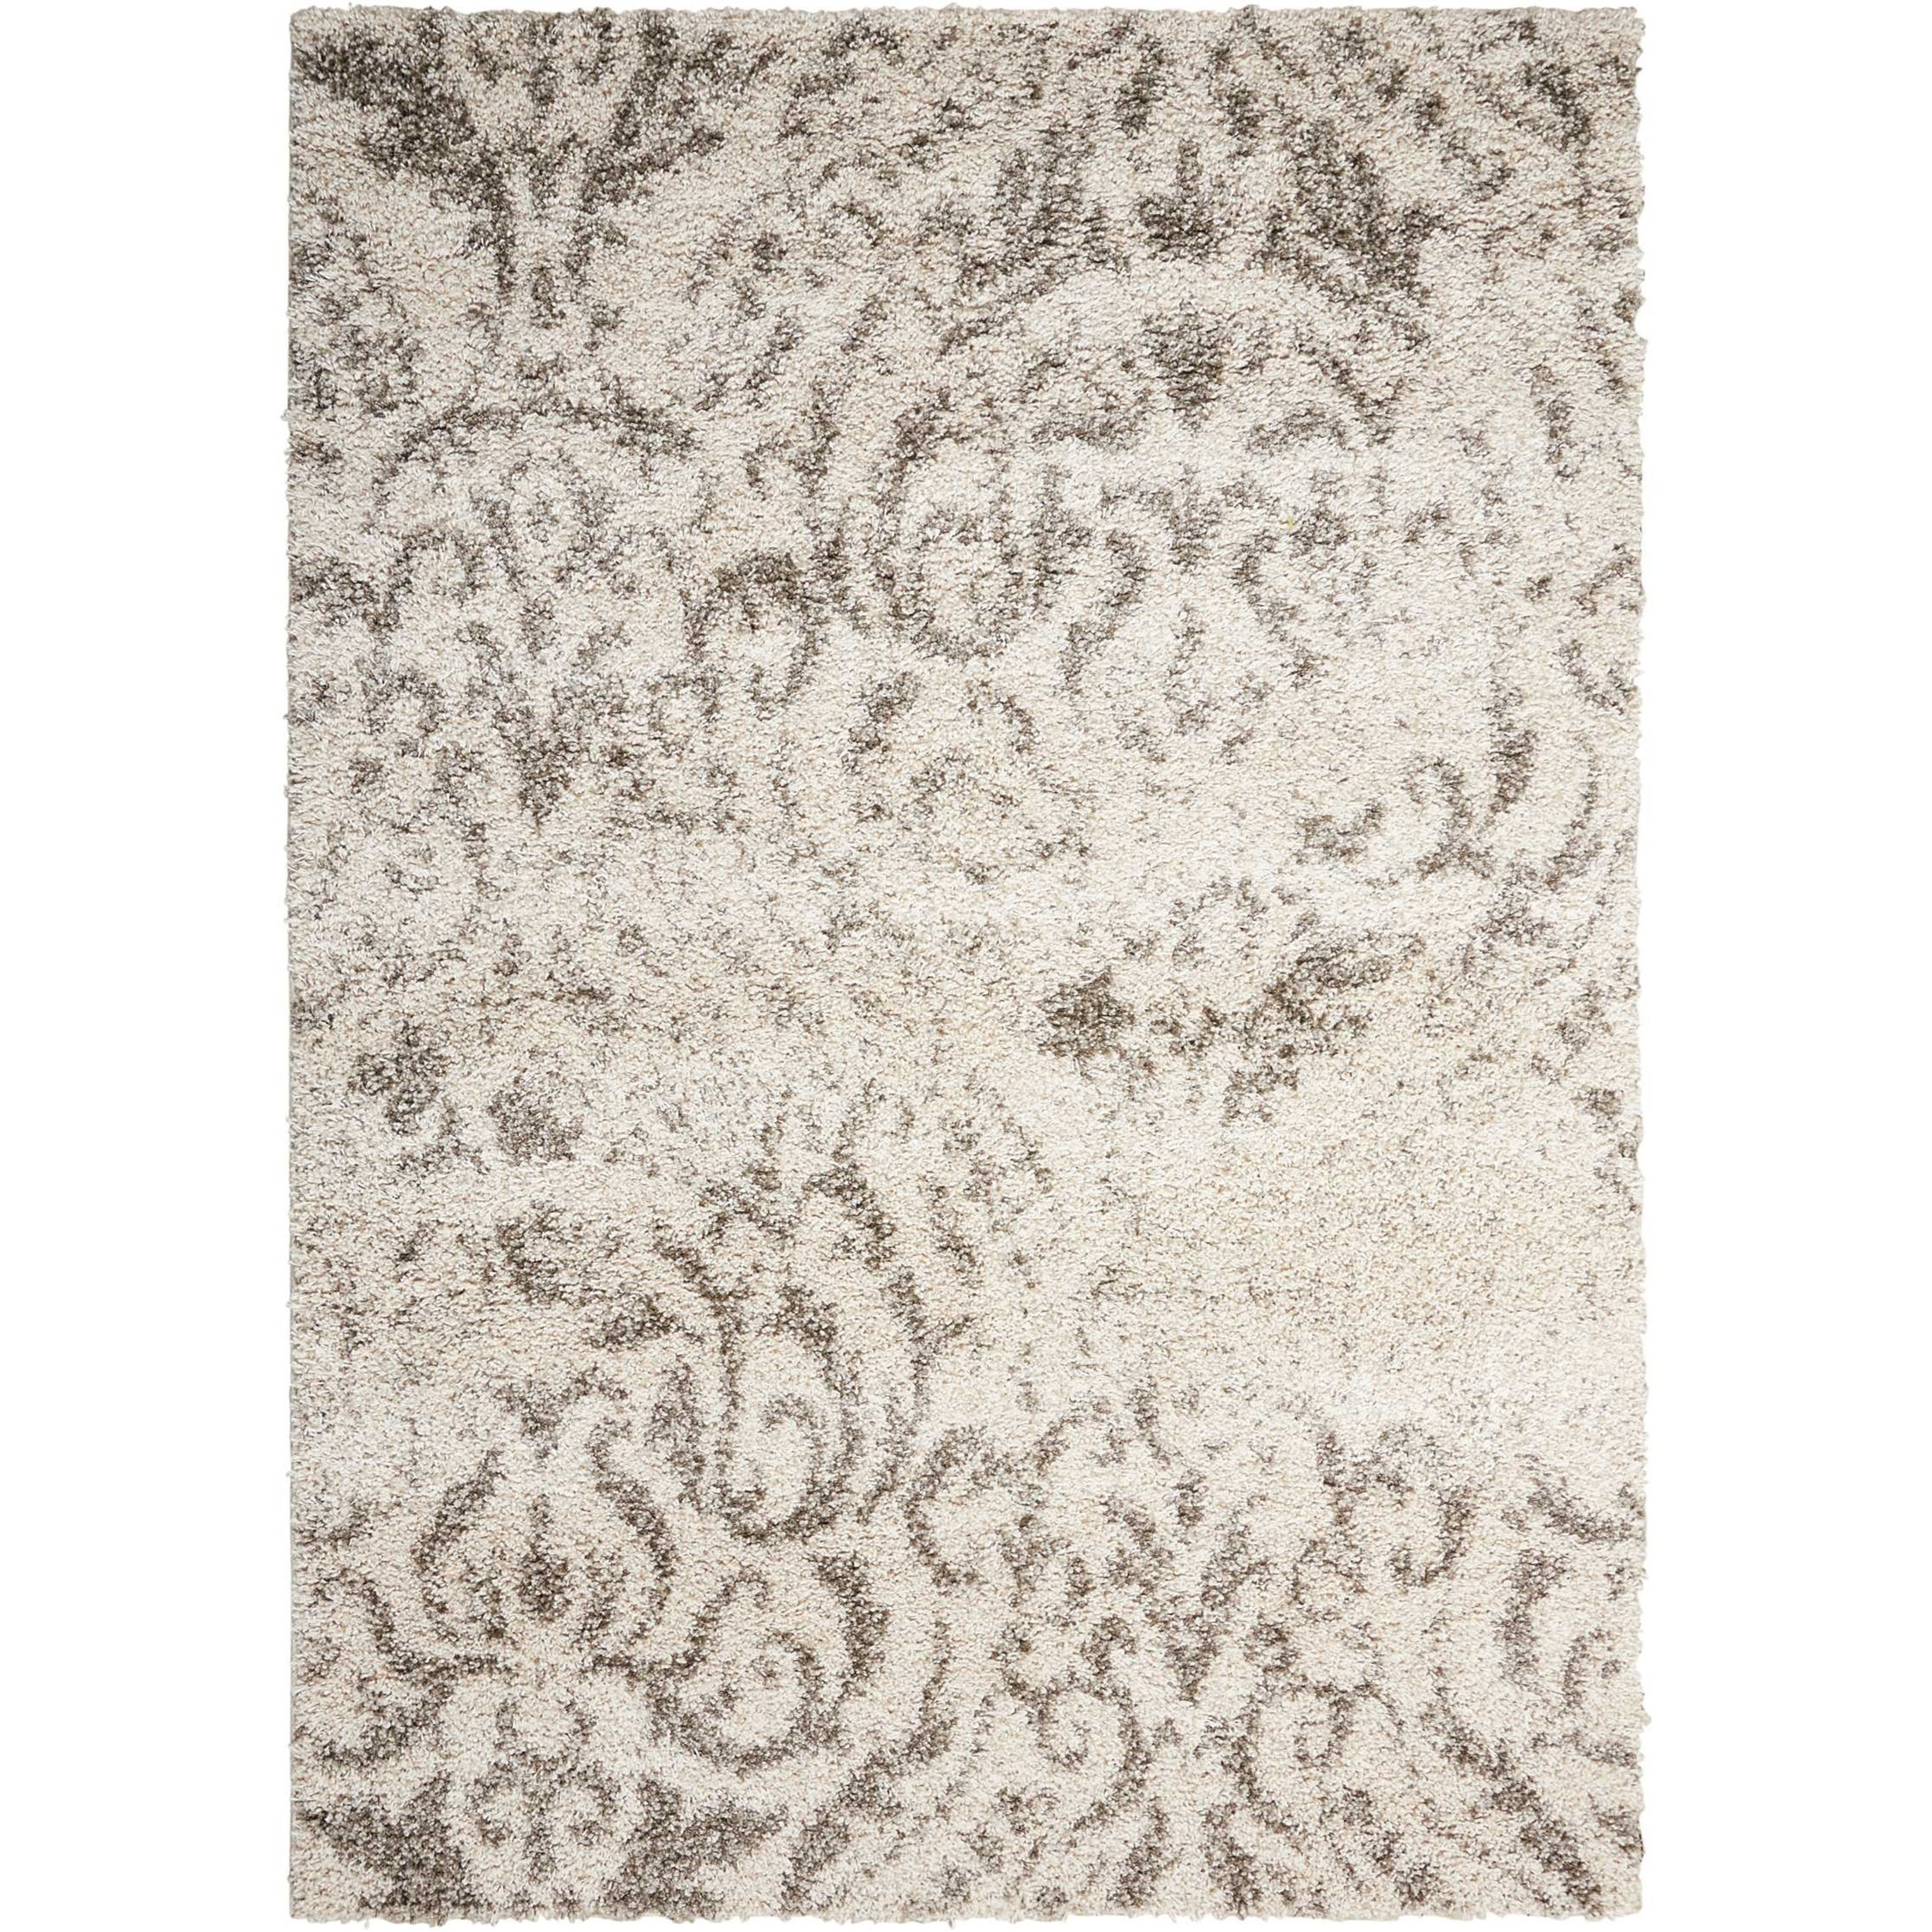 Brisbane 5' x 7' Cream Rectangle Rug by Nourison at Home Collections Furniture